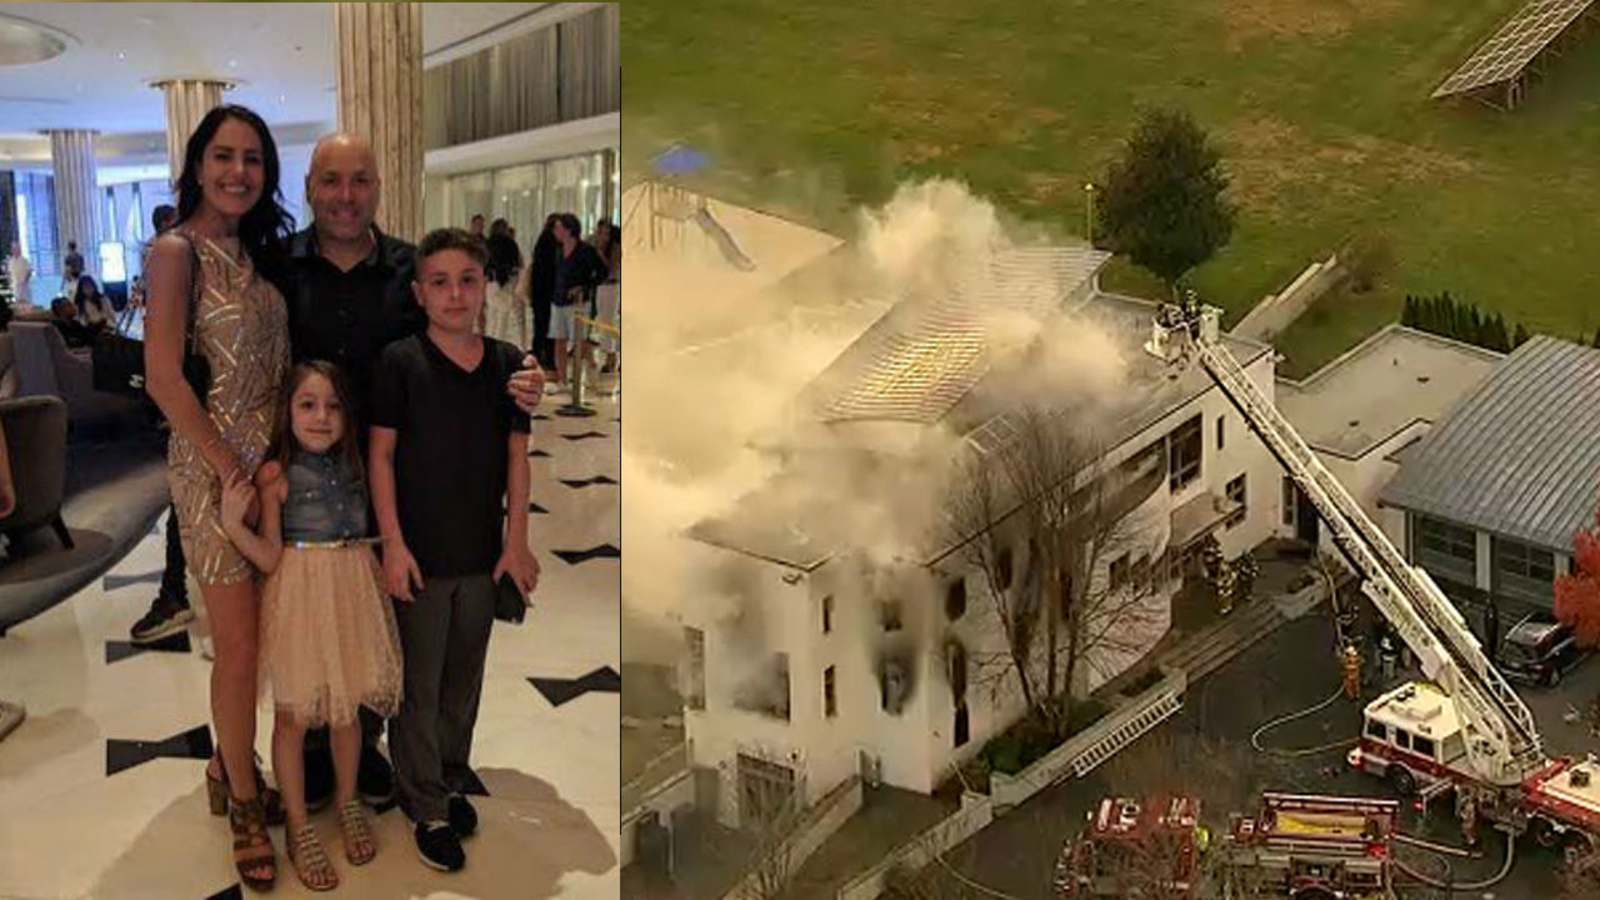 Colts Neck mansion fire: Husband, wife, kids believed killed ...